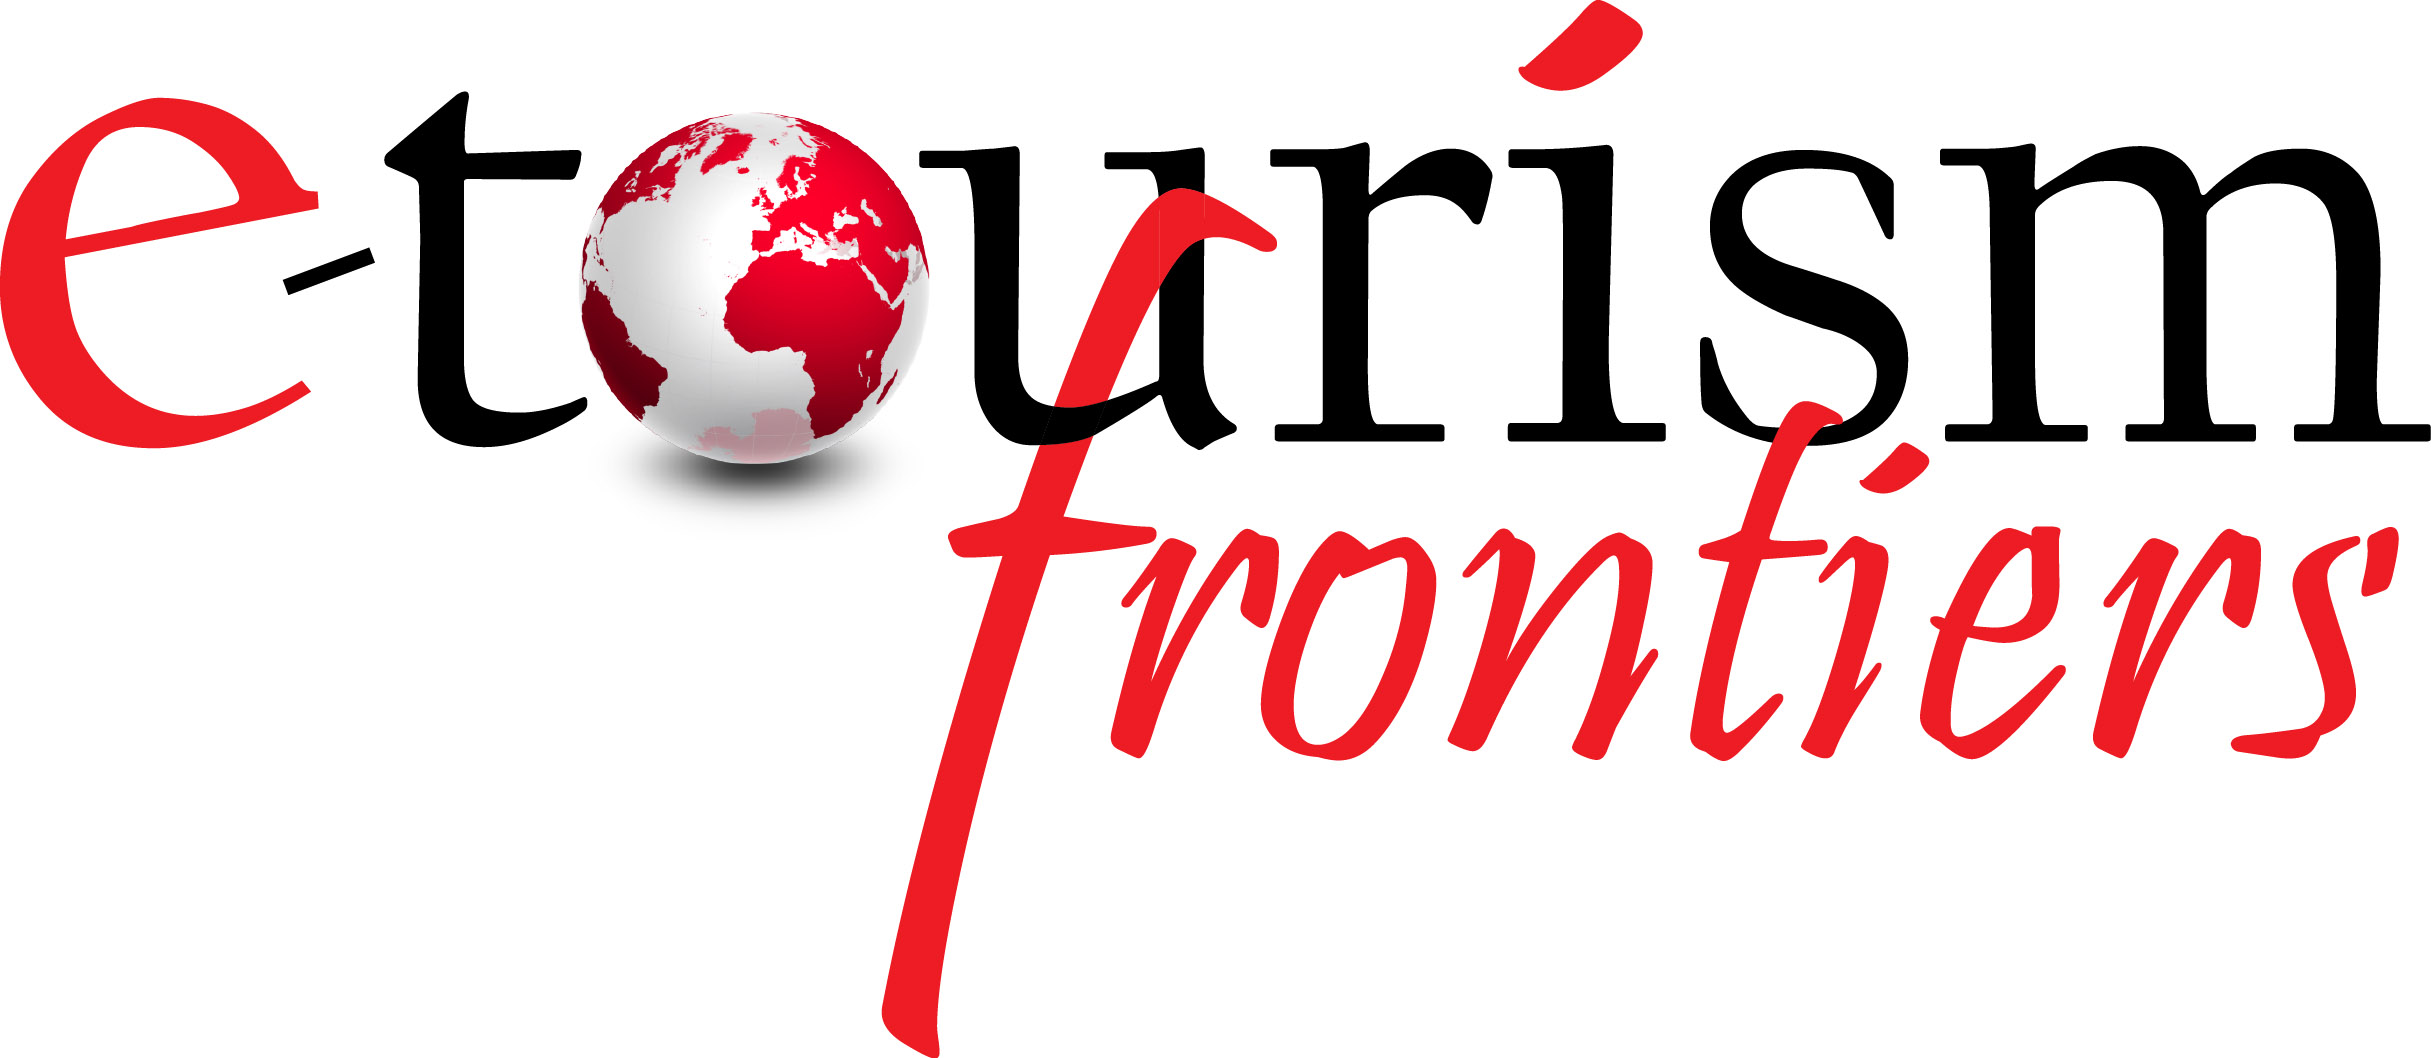 E Tourism Frontiers